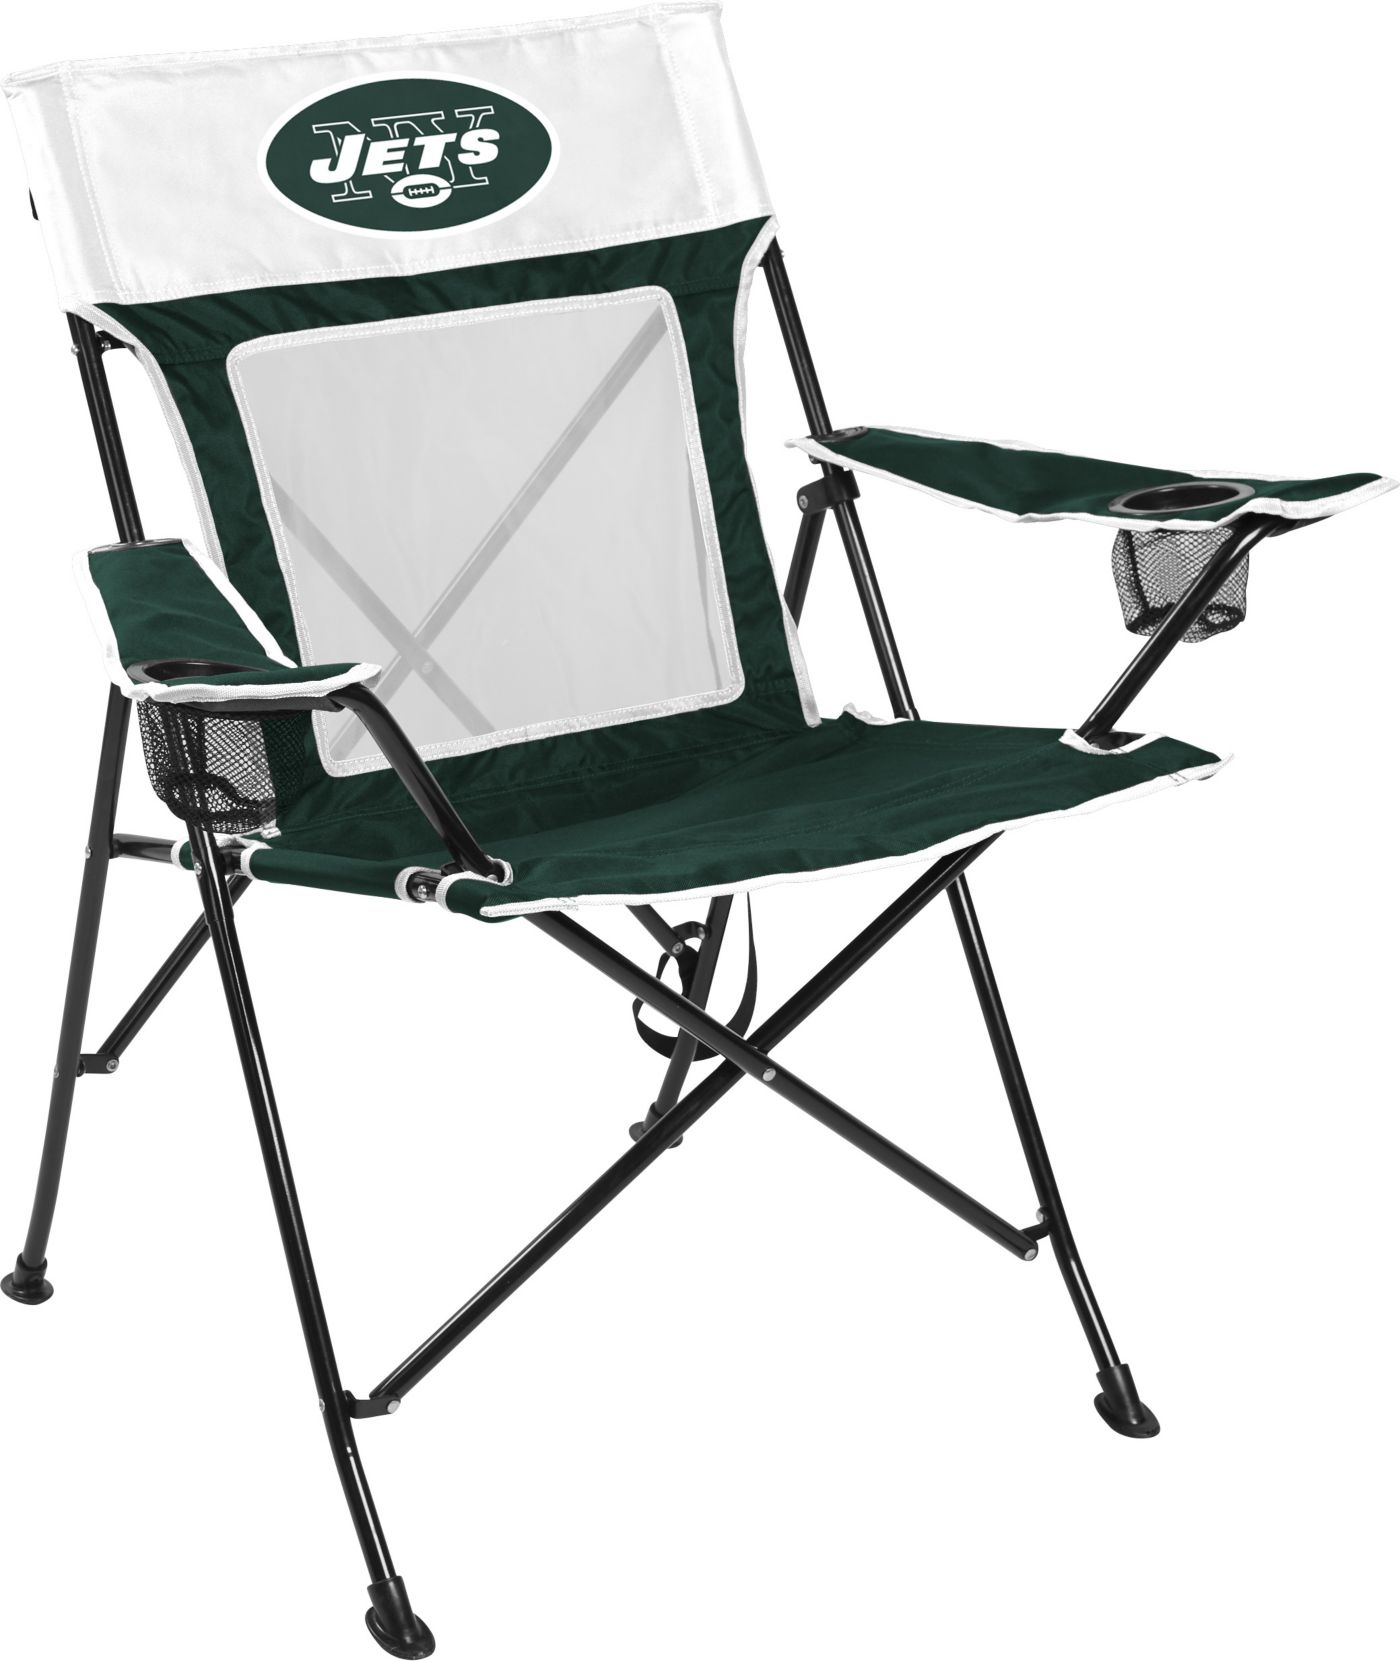 Rawlings New York Jets Game Changer Chair